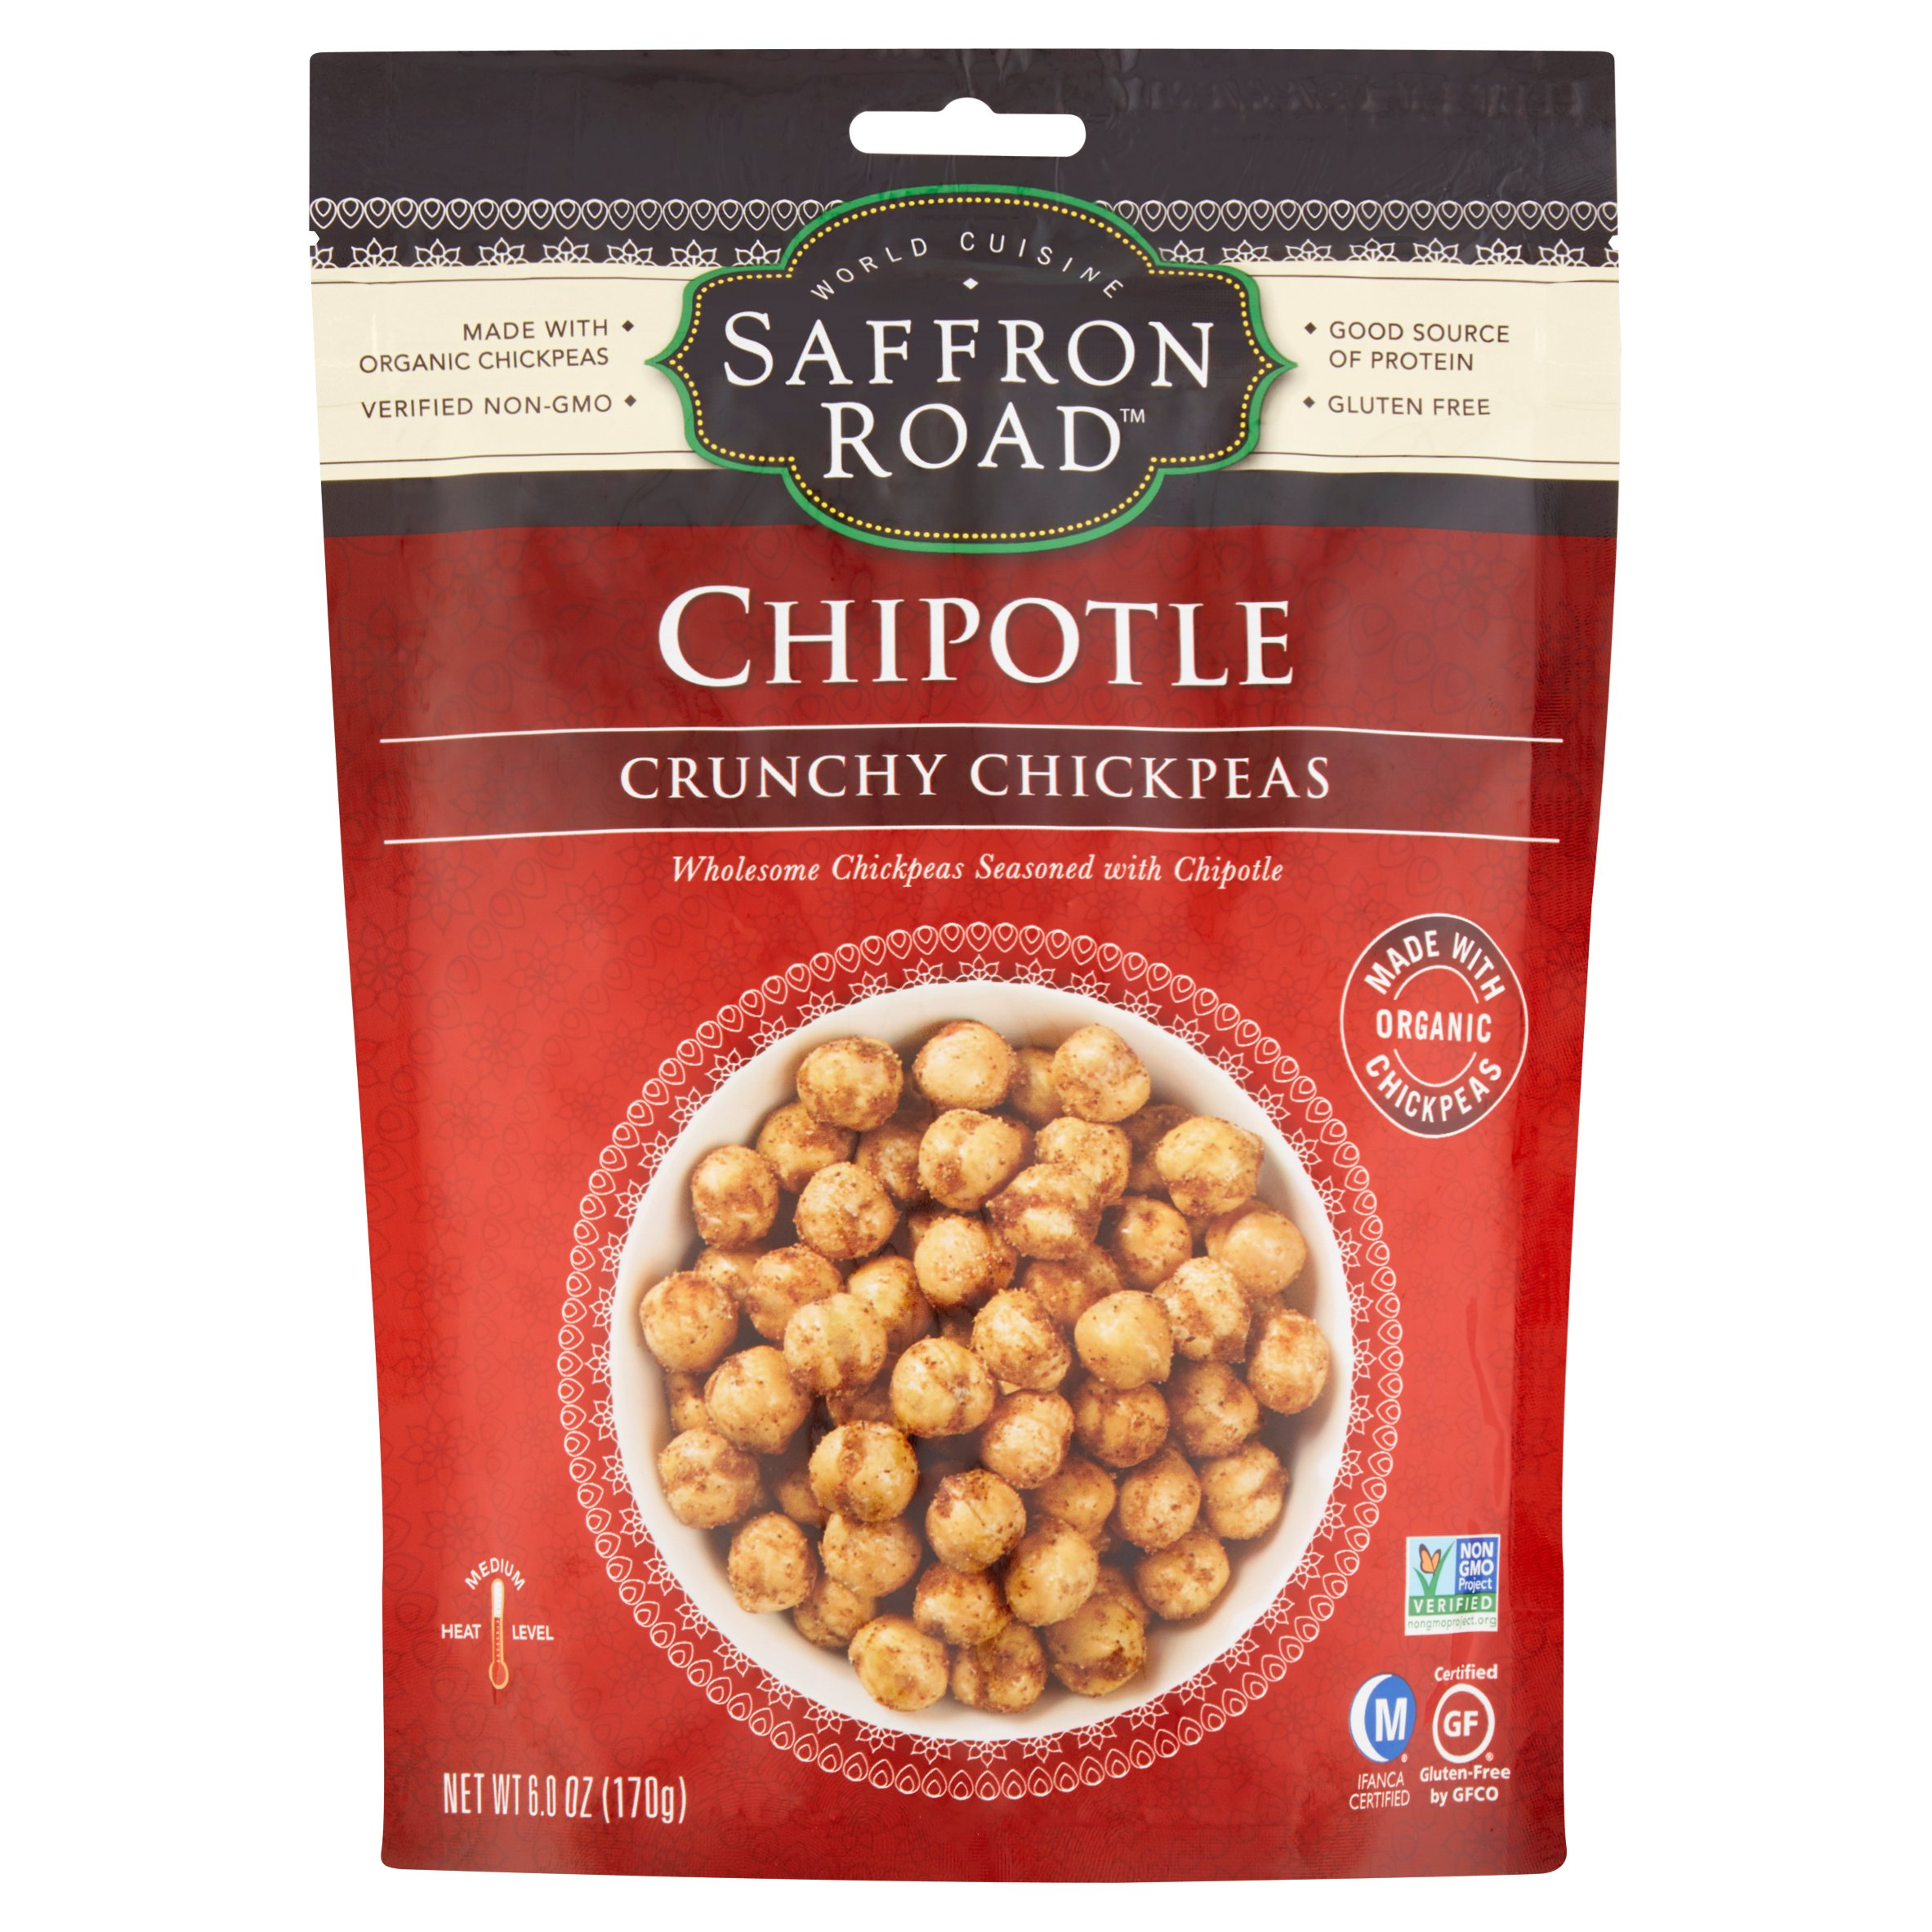 Saffron Road Chipotle Crunchy Chickpeas, 6 oz, 12 pack by American Halal Company, Inc.